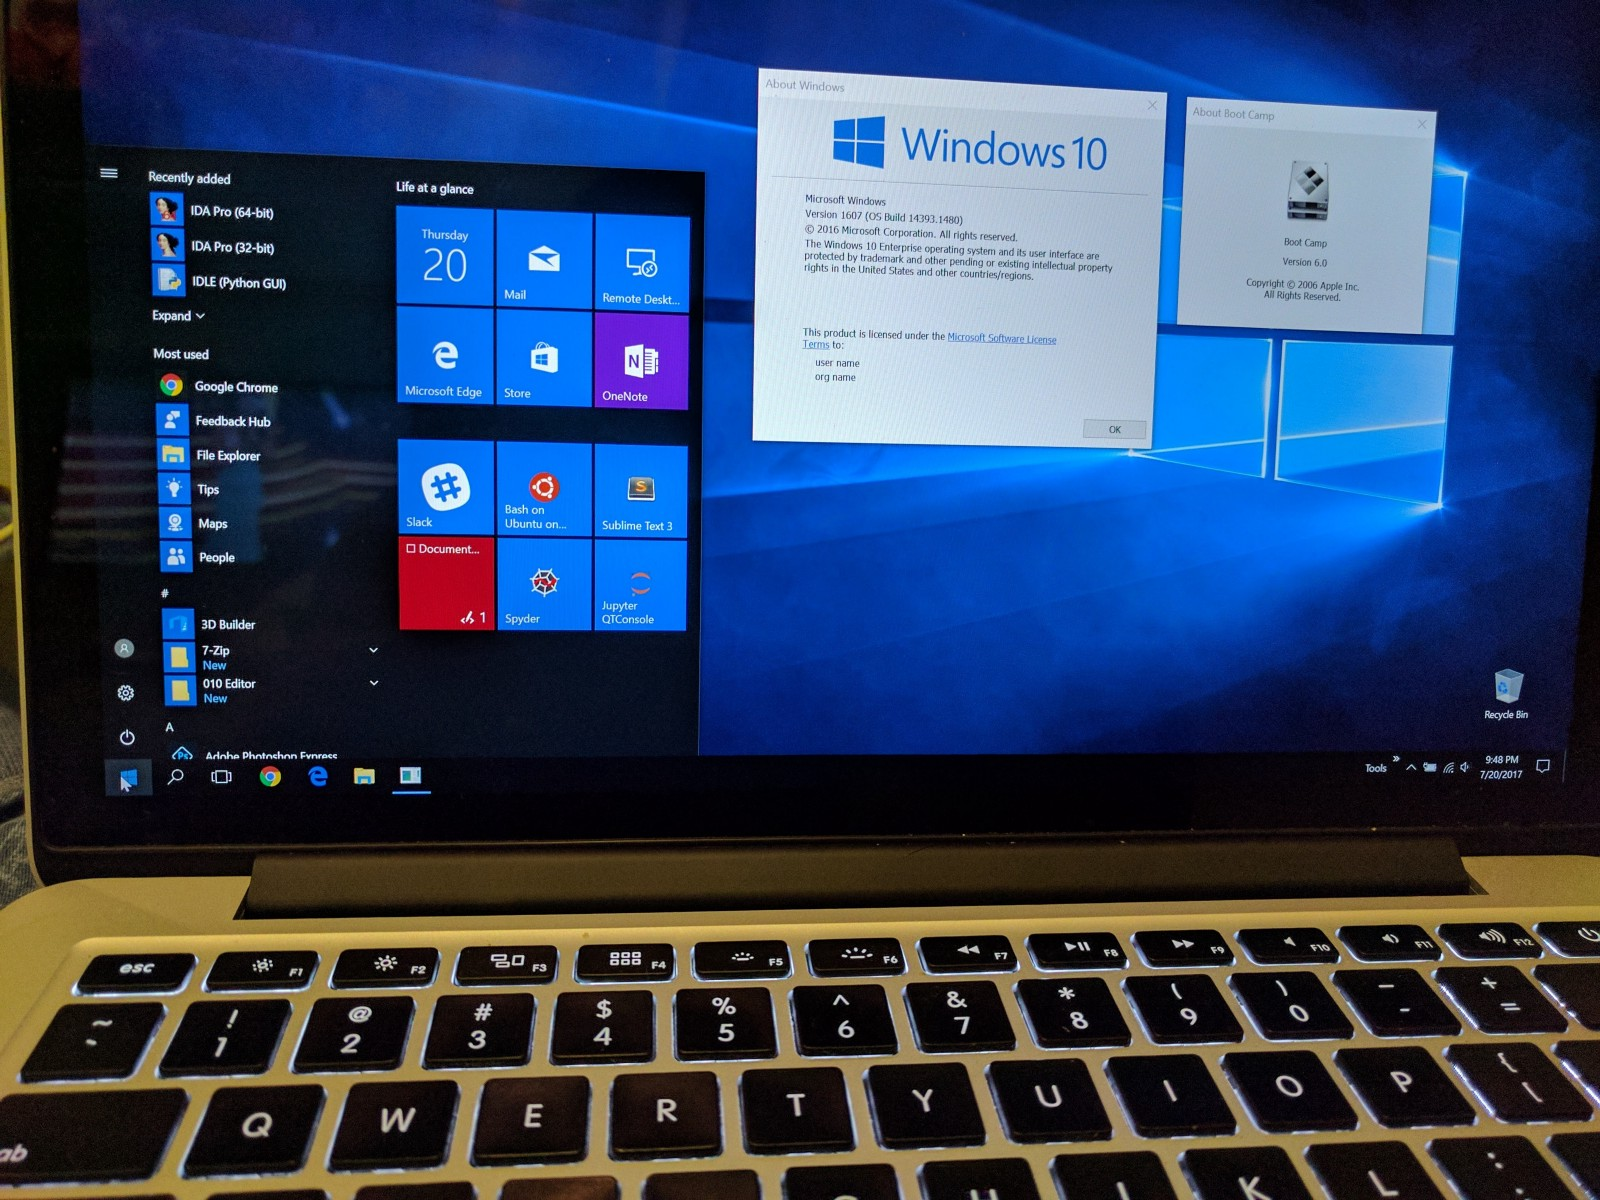 install windows 10 from usb on macbook pro